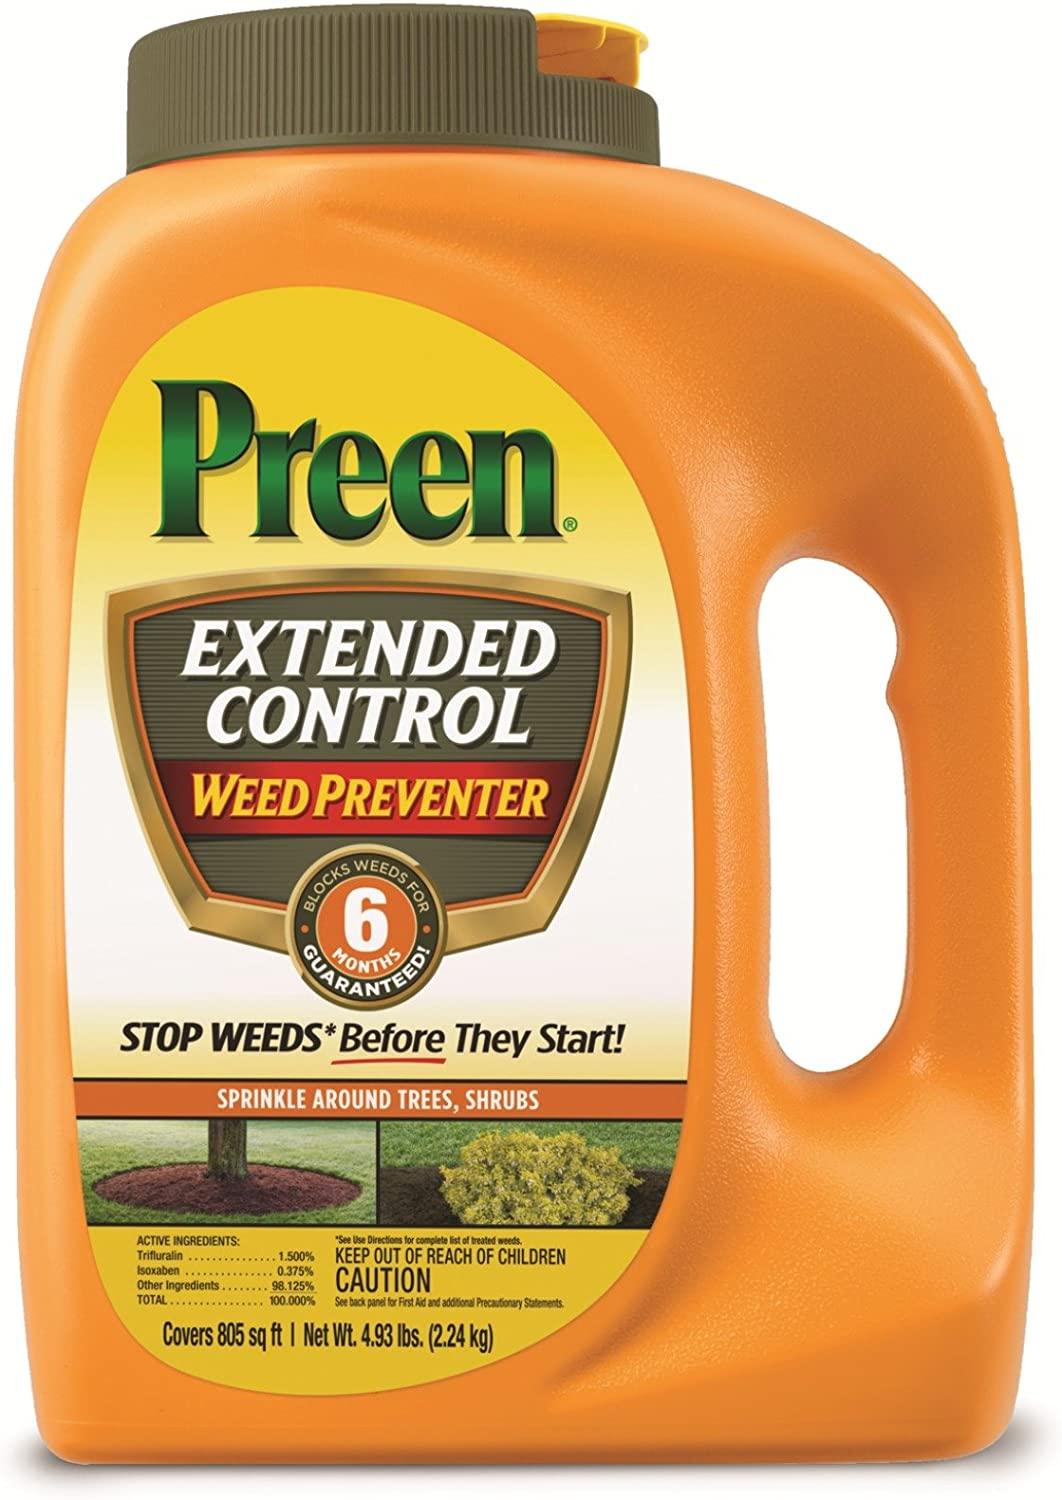 Preen 2464092 Extended Control Weed Preventer